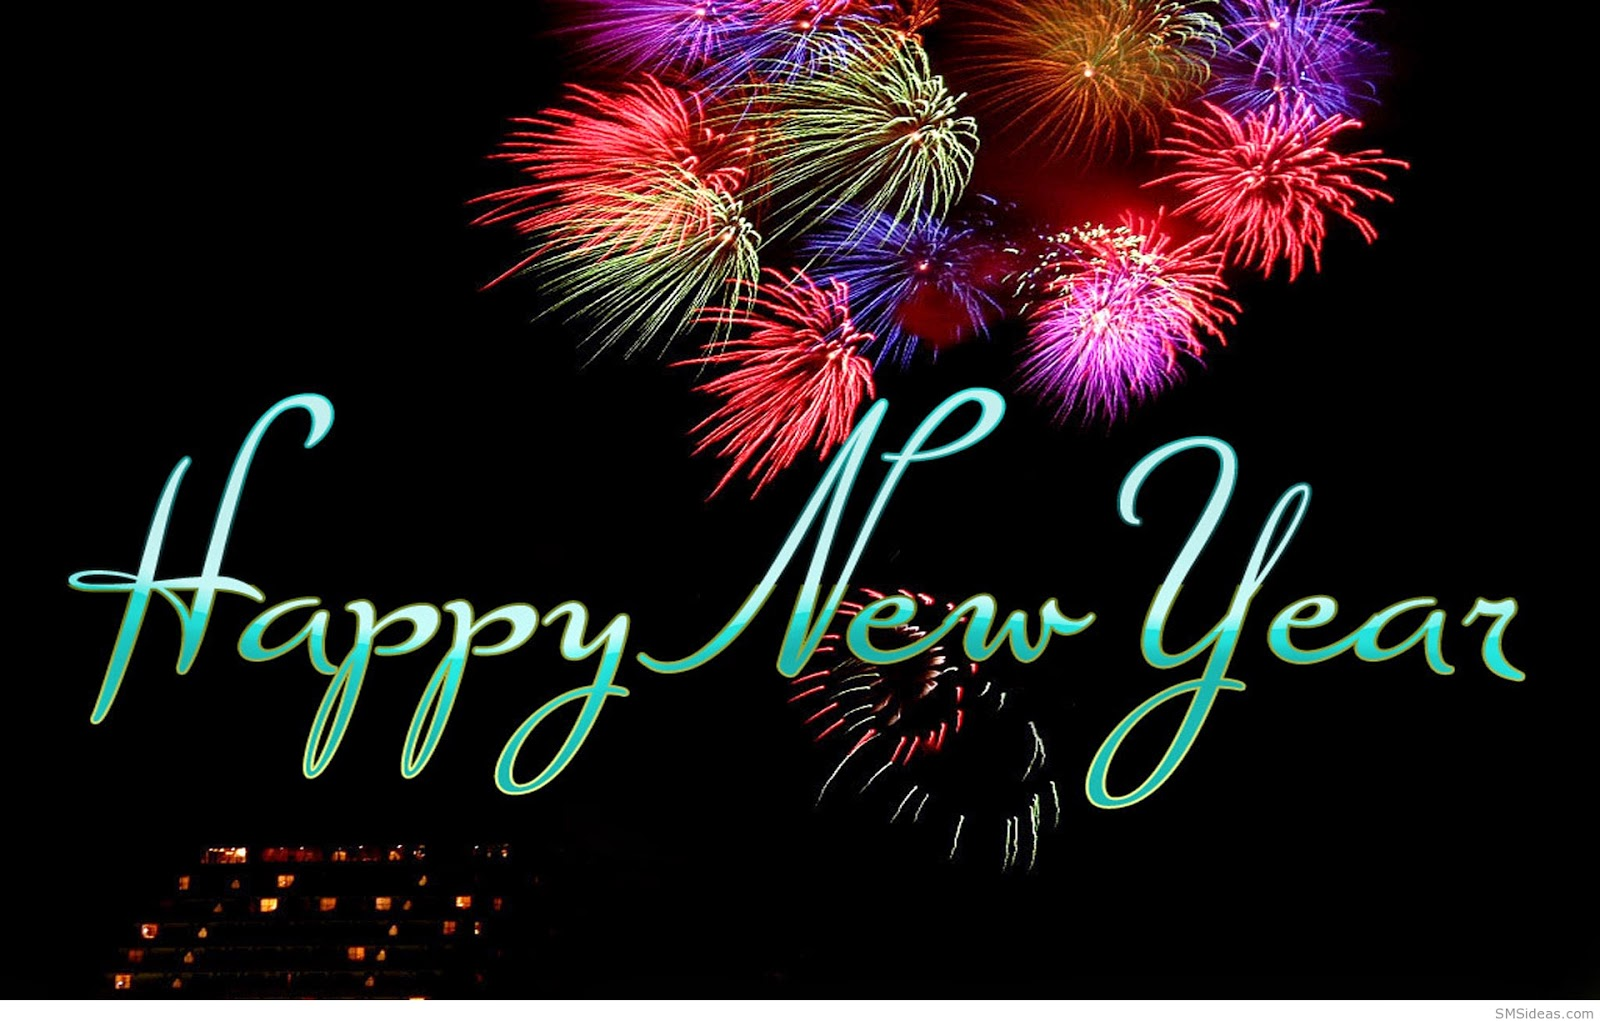 Happy new year greetings messages 2016 trawel india mails happy new year greetings facebook status message m4hsunfo Image collections